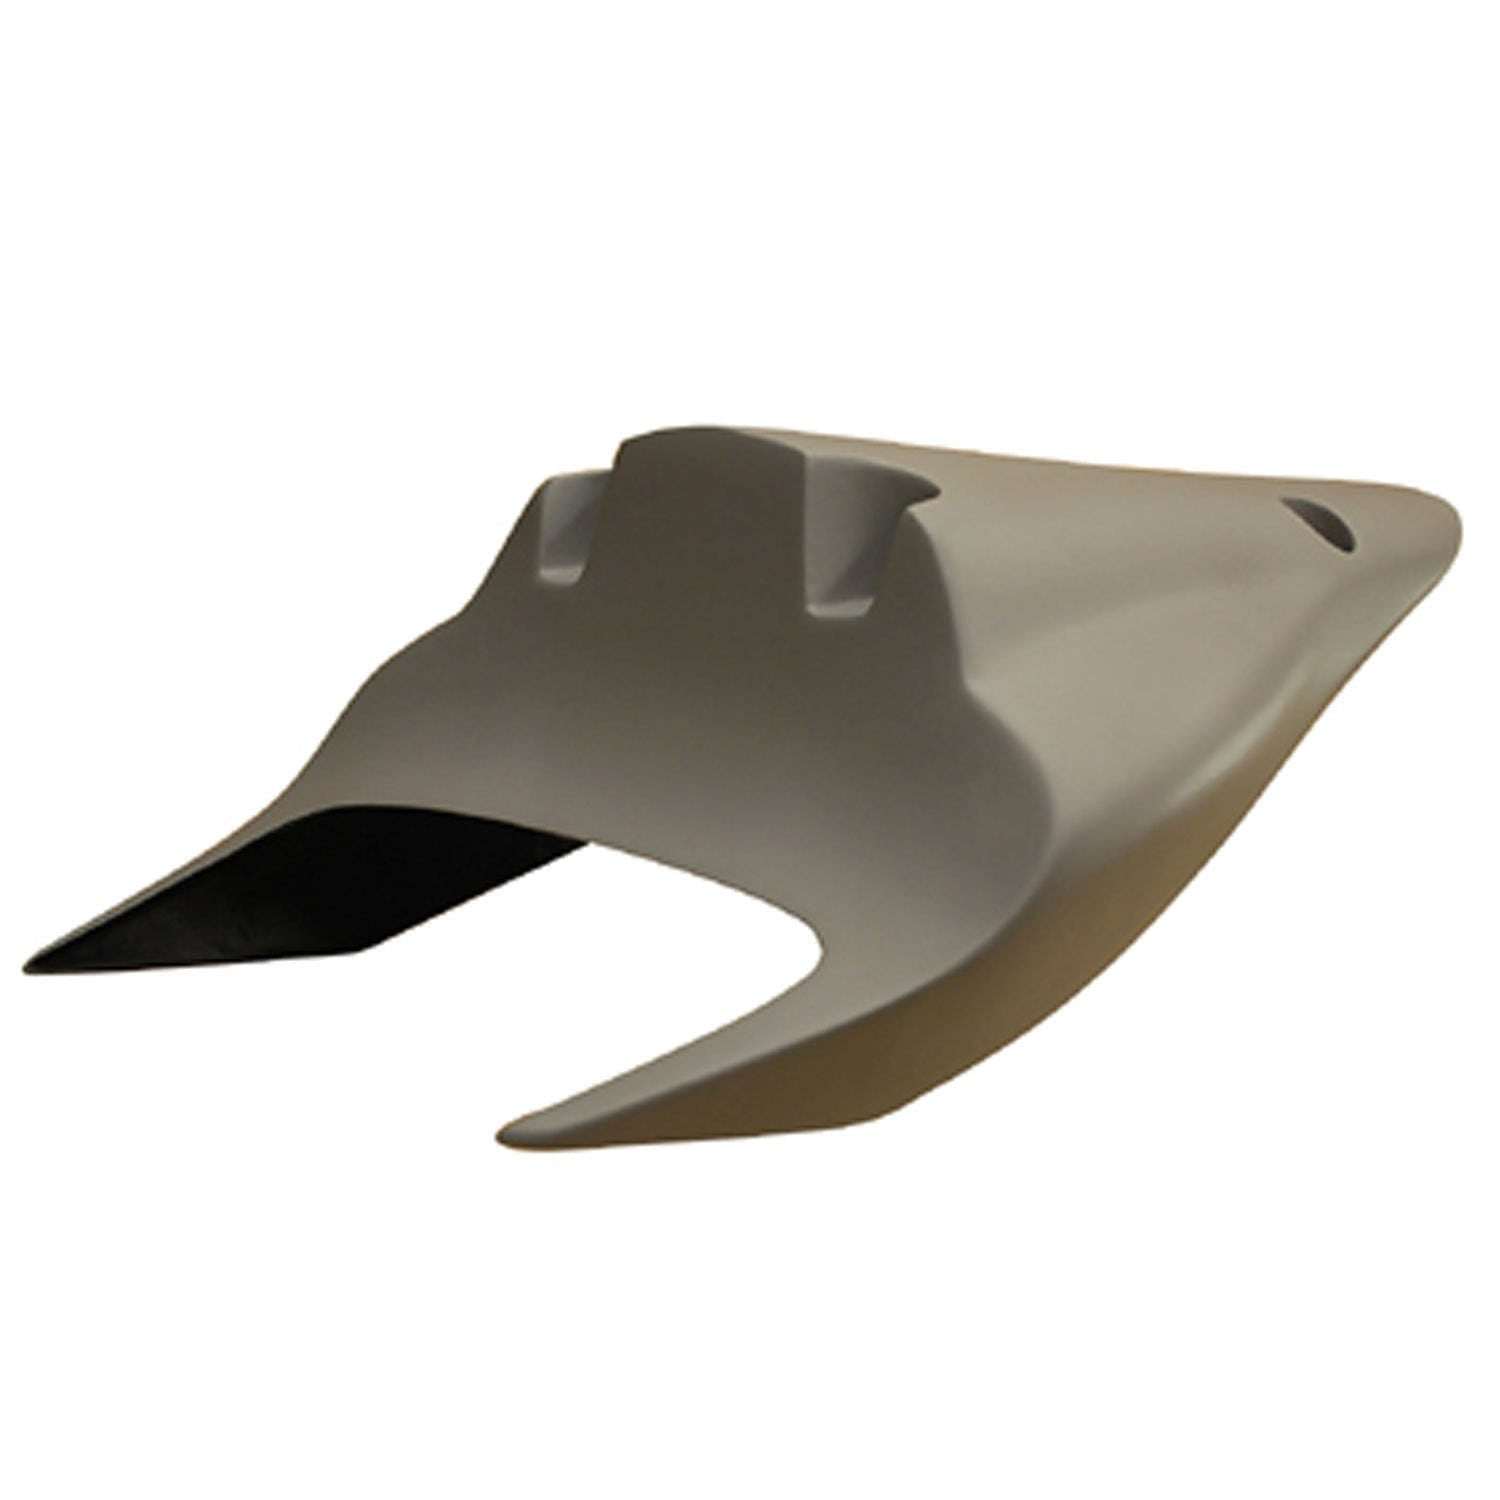 Honda CBR600 2007-12 SuperSport Tail - Pro Series - Woodcraft Technologies - Motorcycle Parts